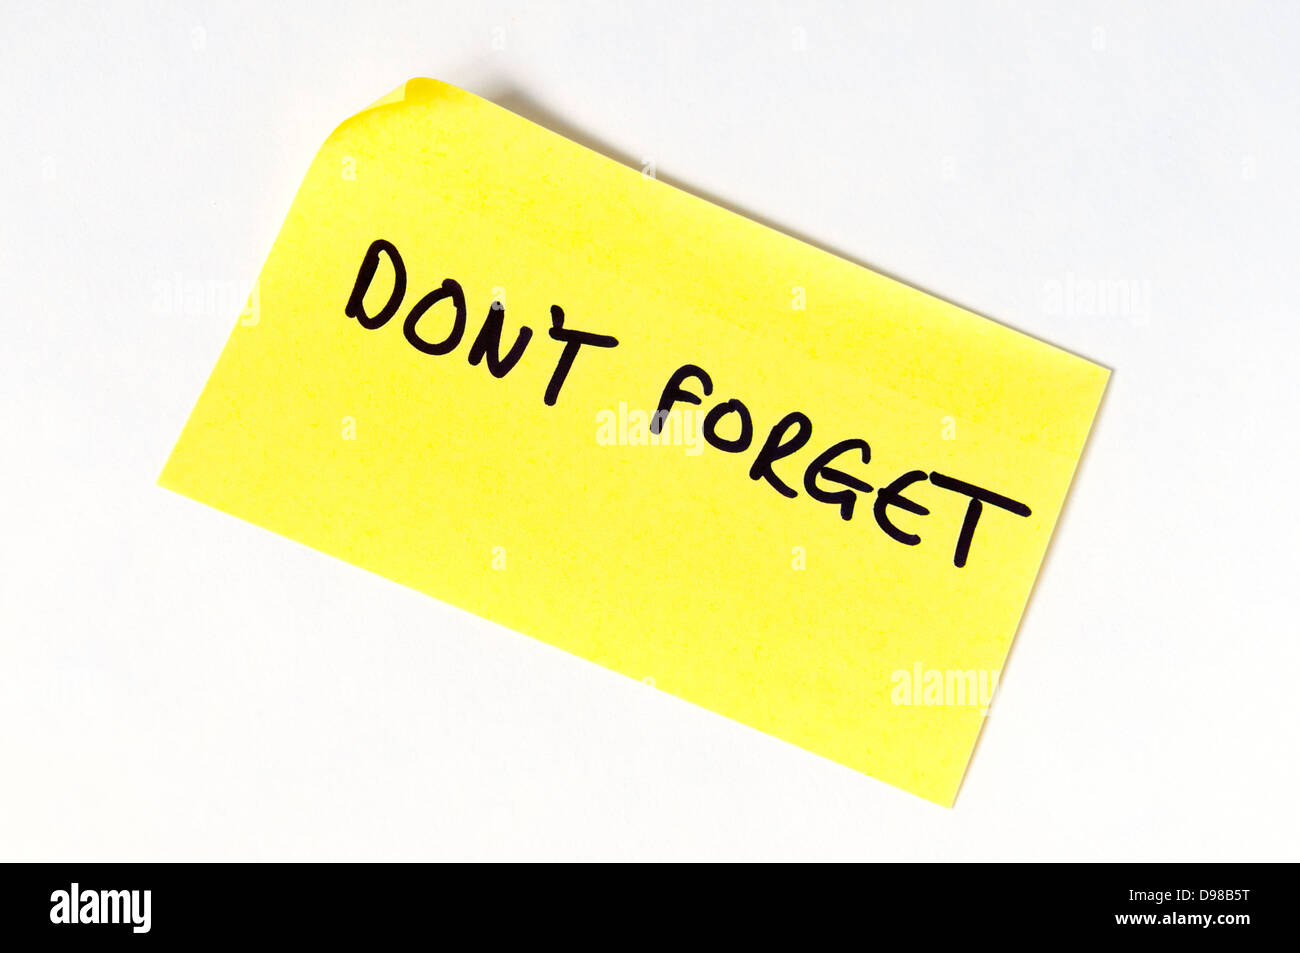 Don't Forget written in capital letters on a yellow post it note. - Stock Image